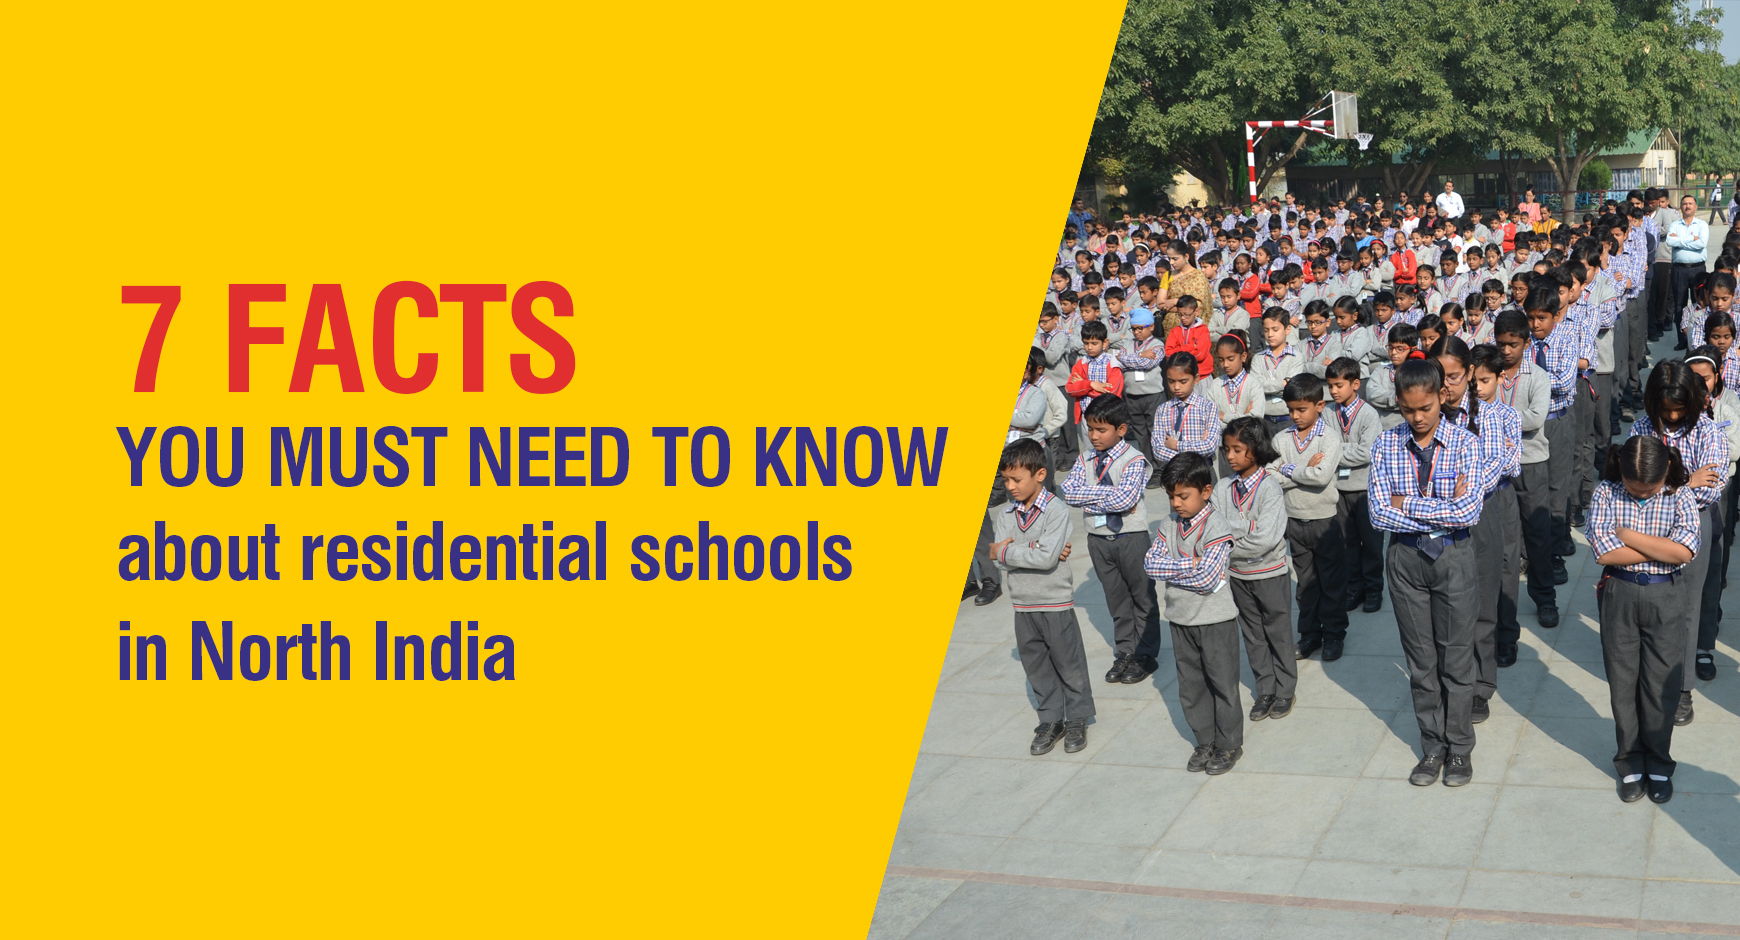 7 facts you must need to know about residential schools in North India